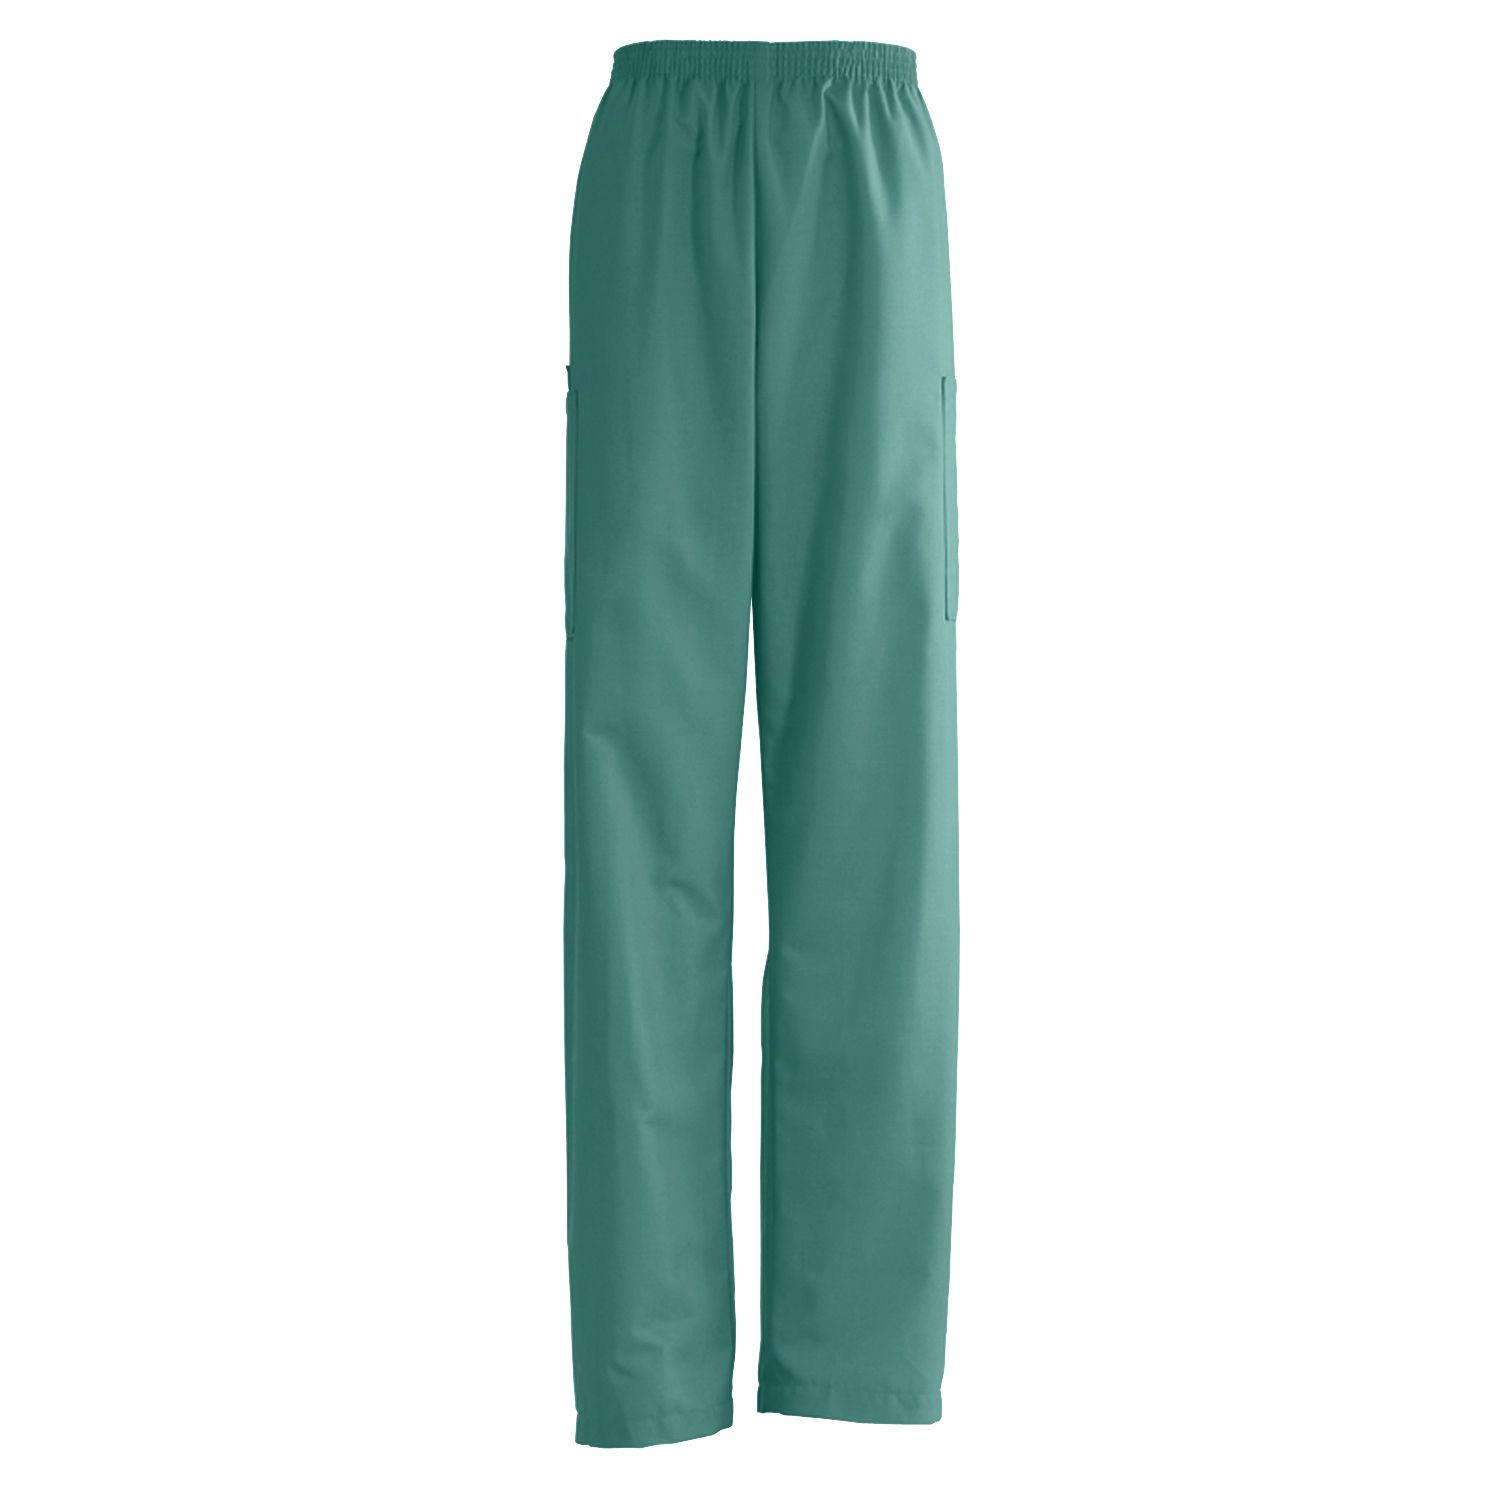 Medline AngelStat Unisex Elastic Waist Cargo Scrub Pants - Emerald, Sm, Long, Each - Model 674NJTSL